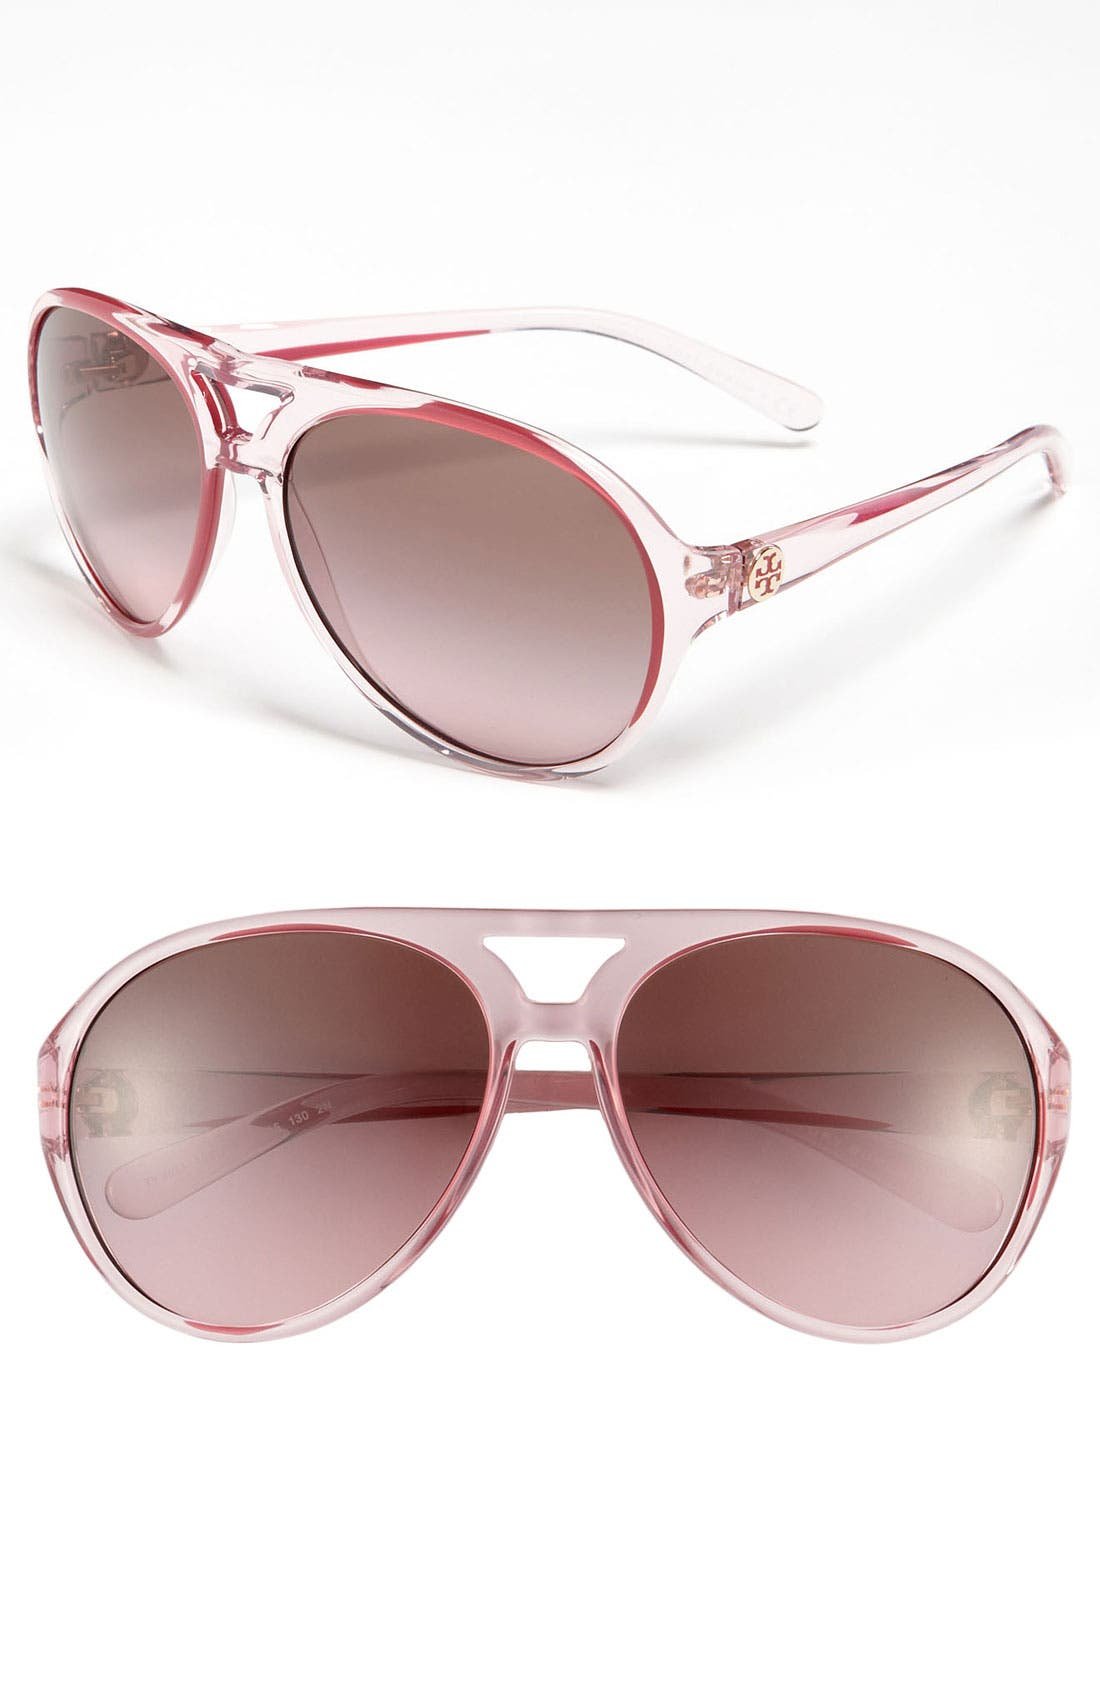 Main Image - Tory Burch Aviator Sunglasses